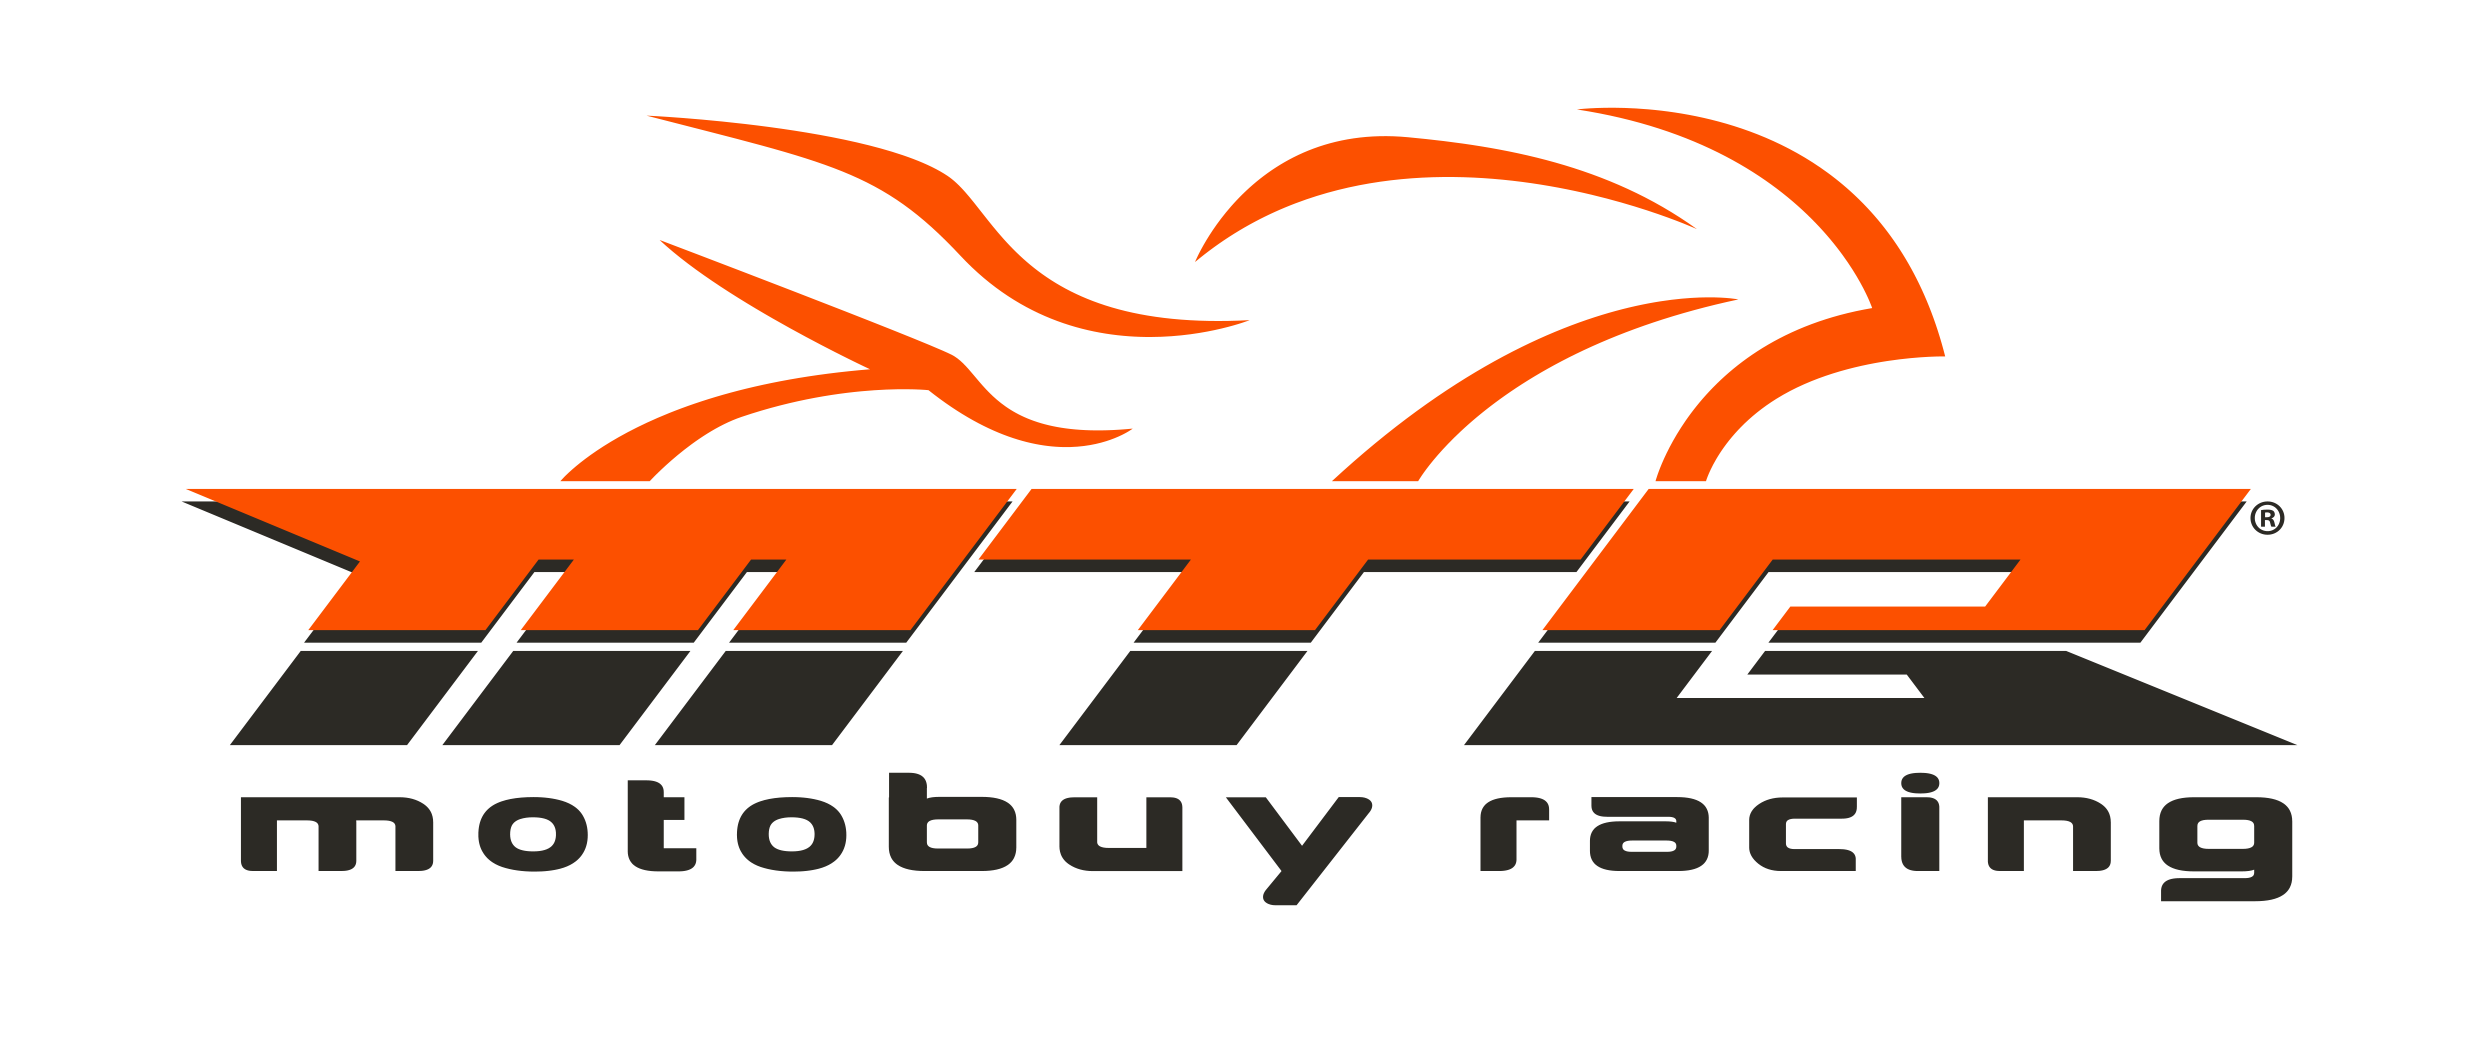 MotoBuy Racing Malaysia Motorcycle Parts & Accessory Online Store